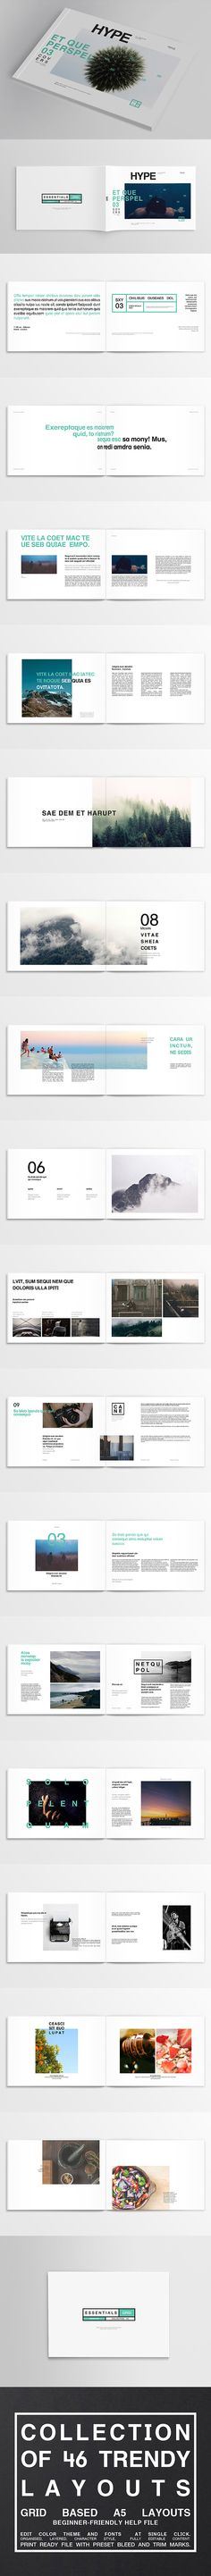 http://graphicriver.net/item/46-essential-trendy-layout-set-magazine-brochure/10978821